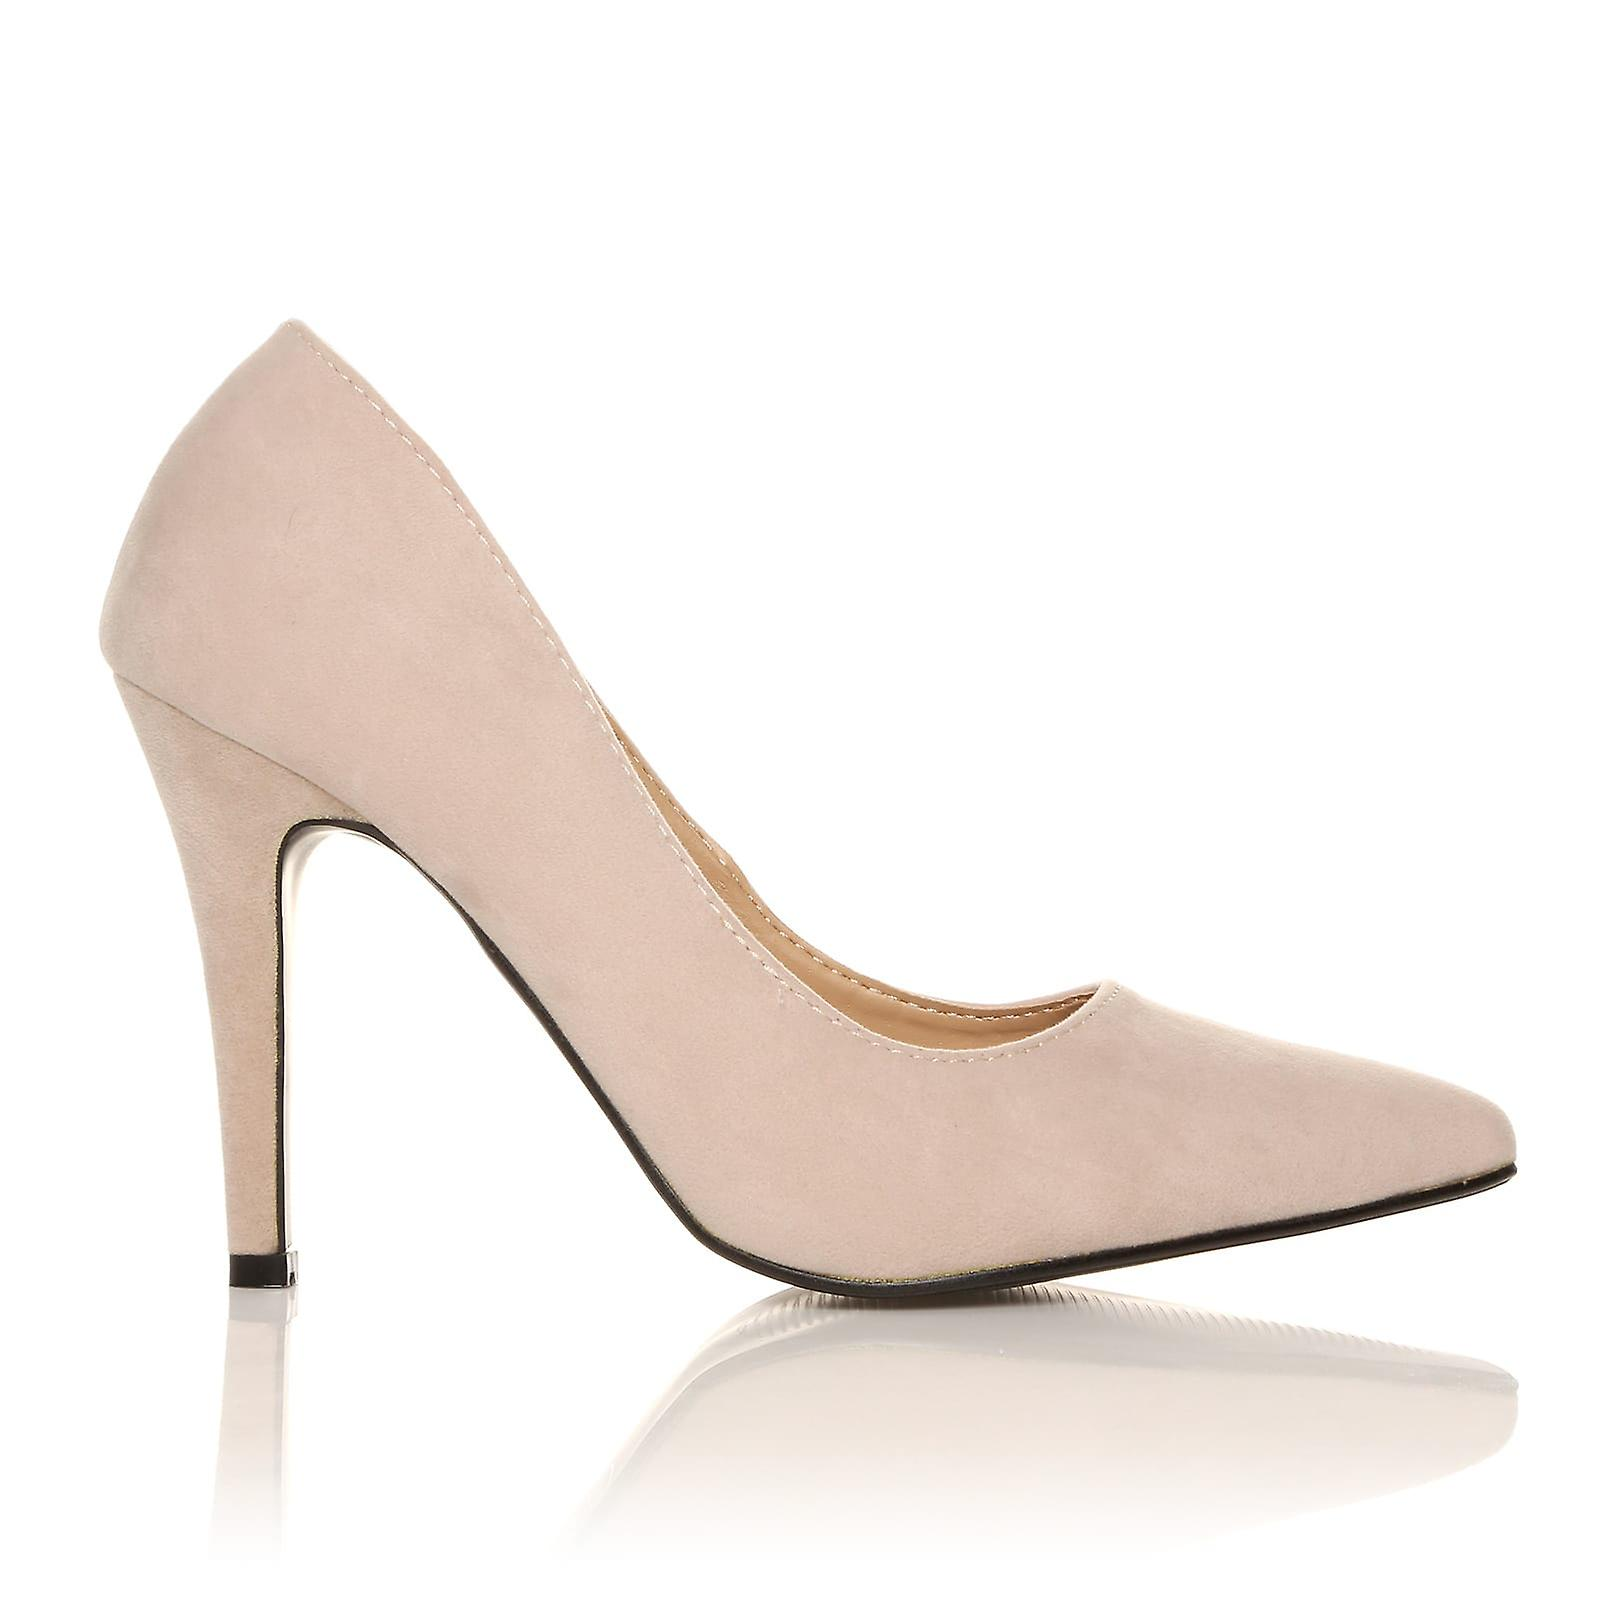 DARCY High Nude Faux Suede Stilleto High DARCY Heel Pointed Court Shoes d51597